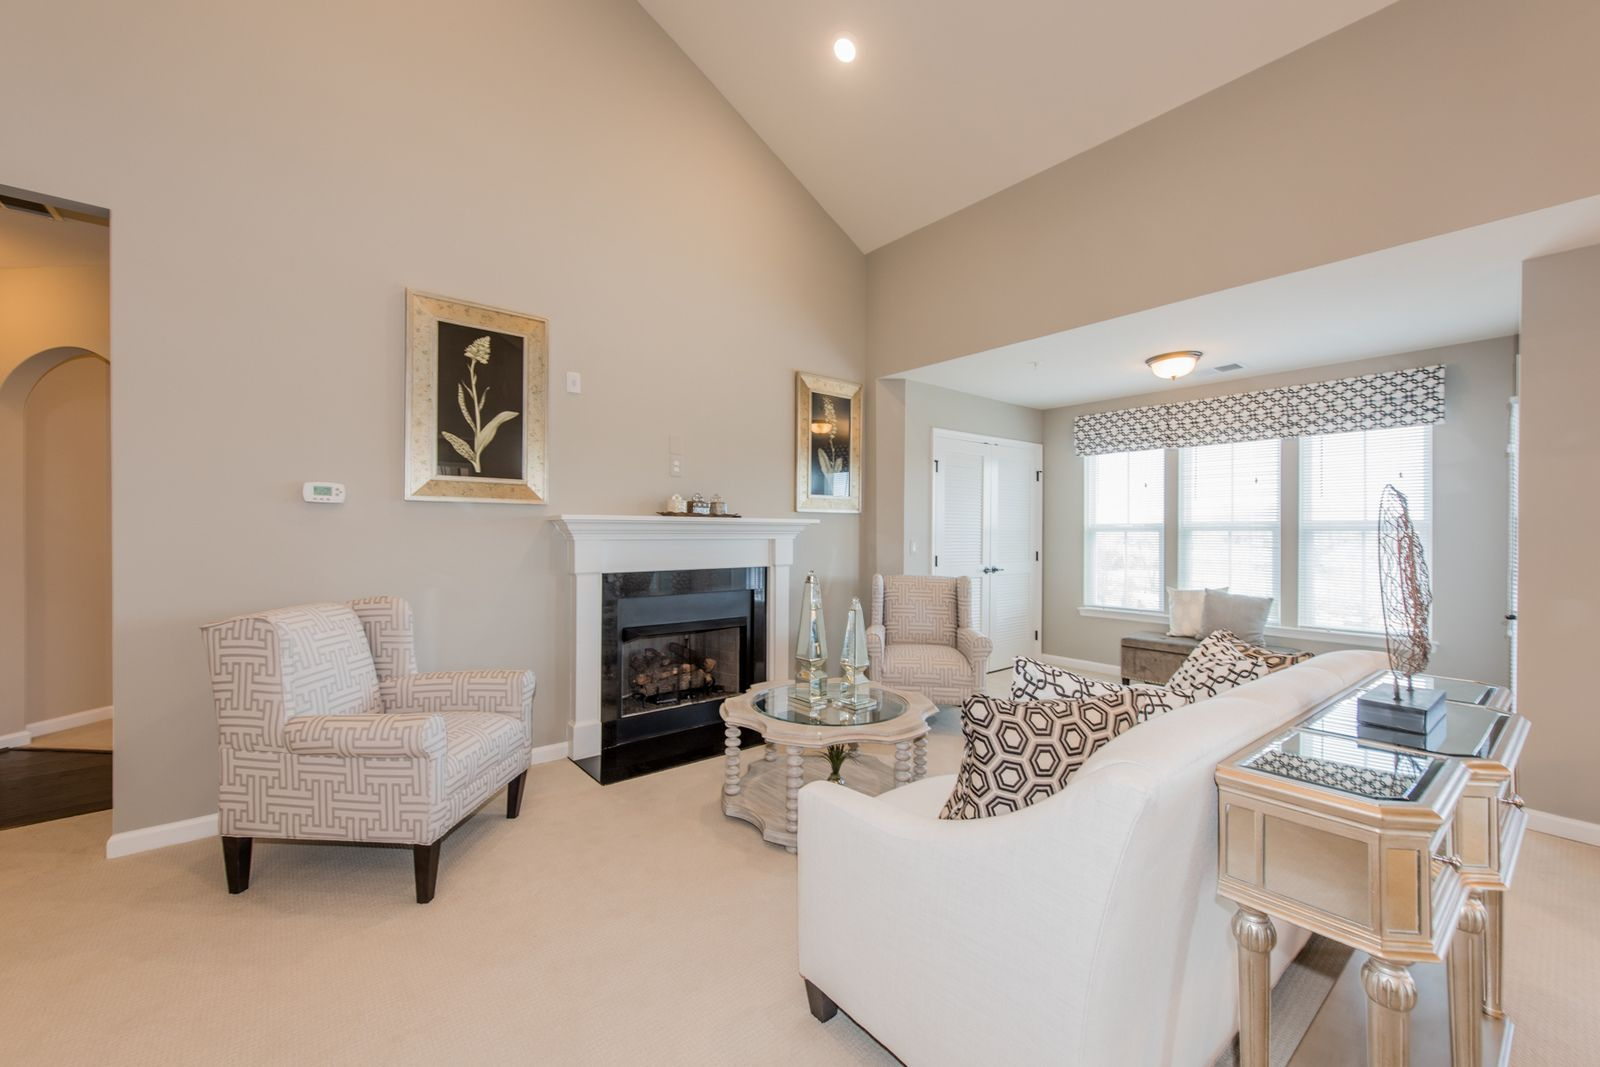 Living Area featured in the Chambord By Ryan Homes in Washington, MD